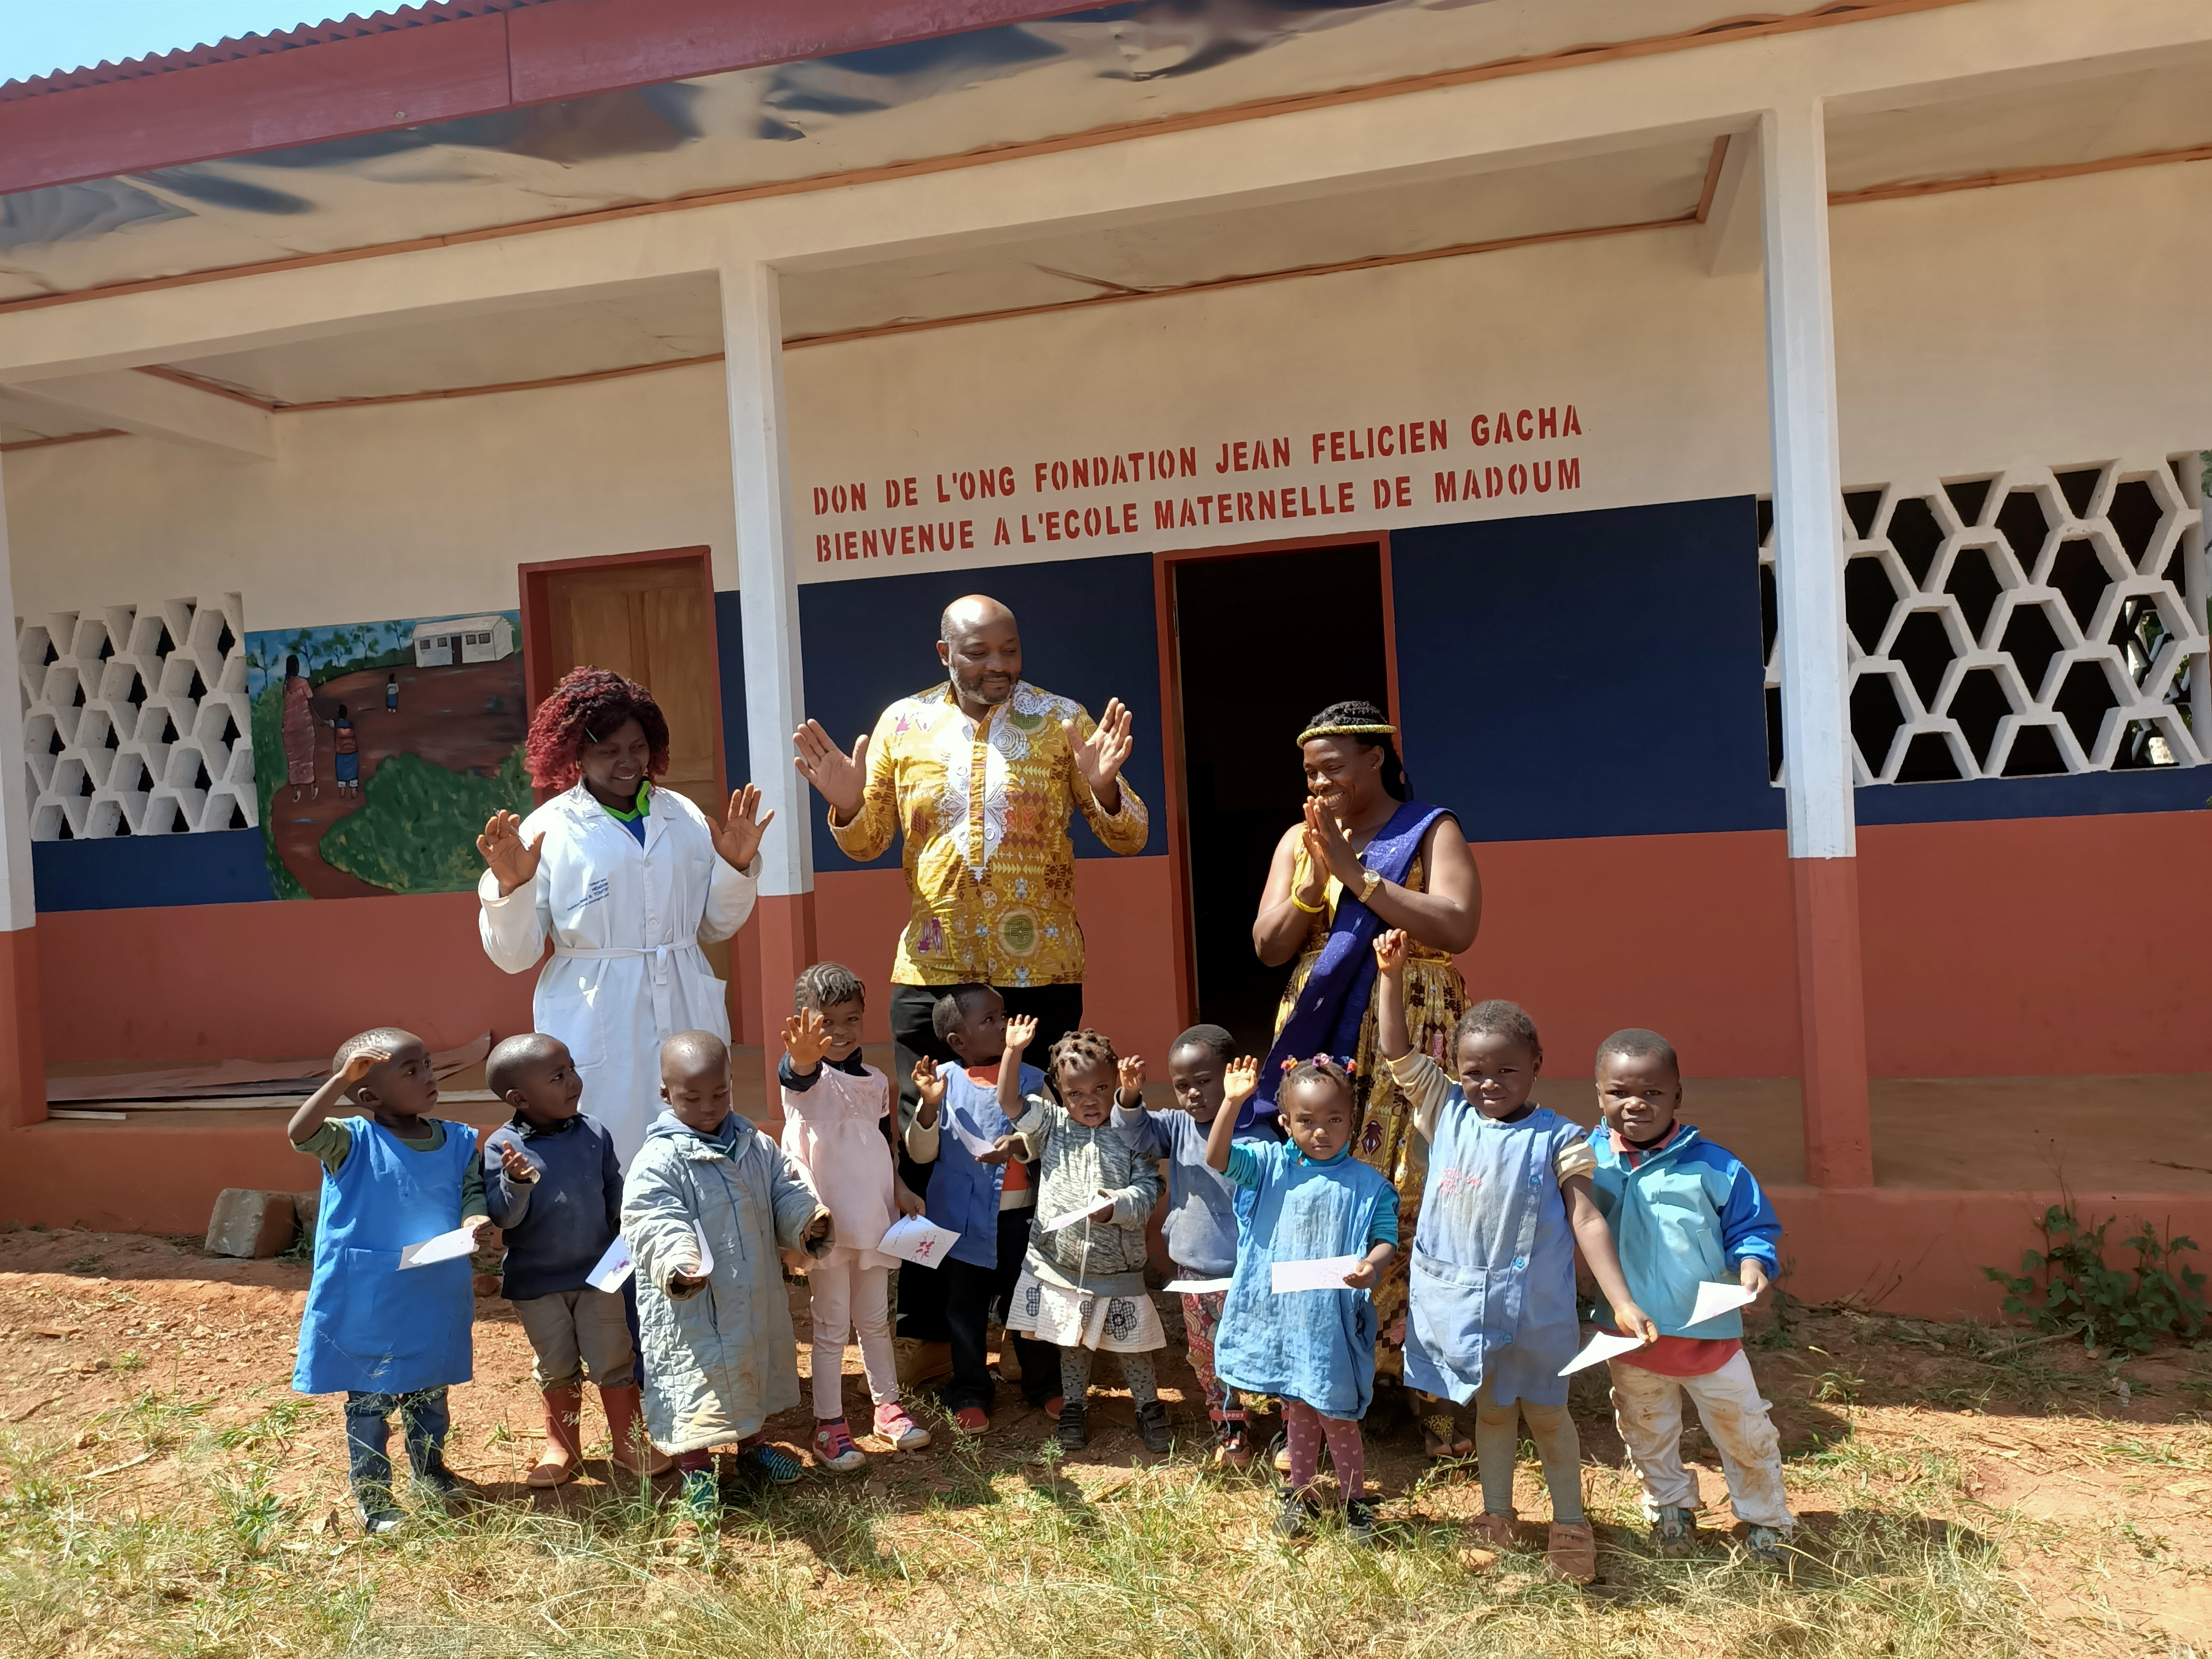 The Madoum school construction in Cameroun by the Gacha Foundation